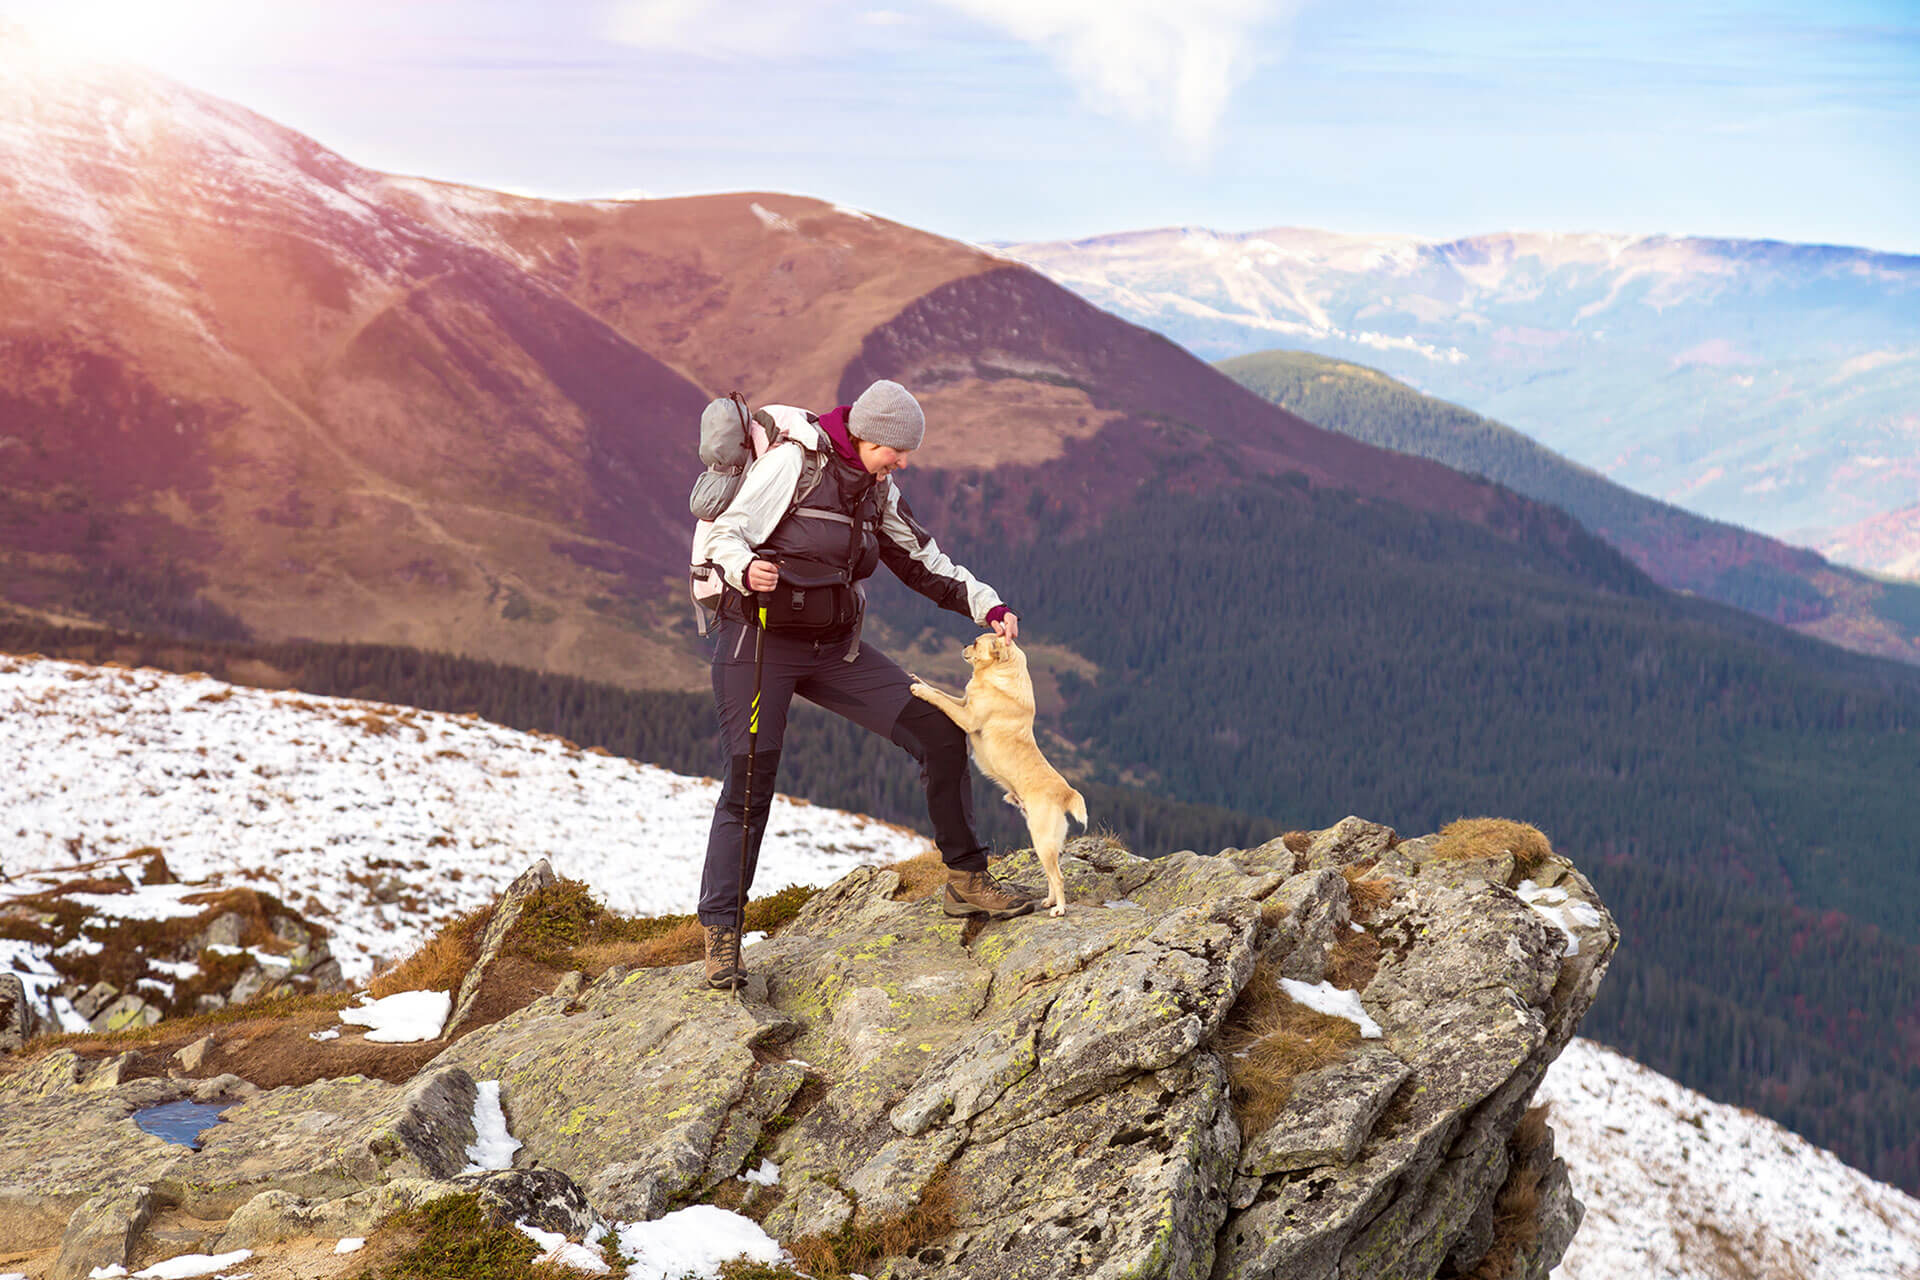 Mountain hike with your dog? These tips will get you through your next outdoor adventure!